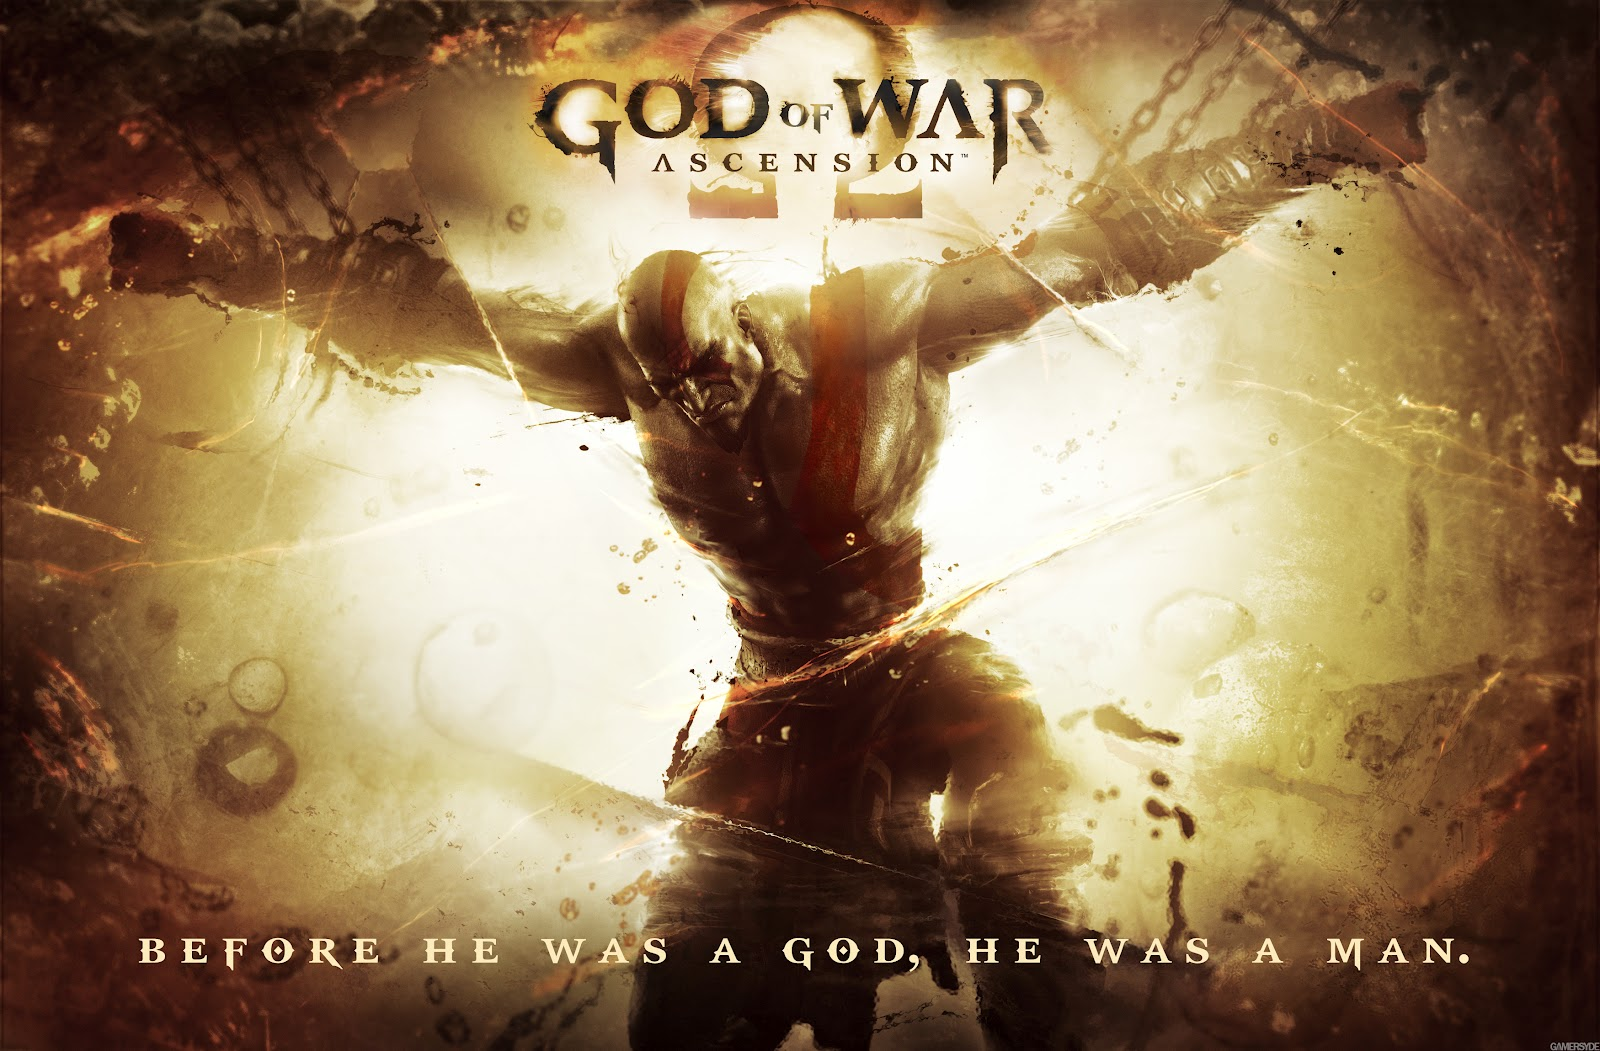 jaquette god of war ascension playstation 3 ps3 cover avant g 1334820440 God of War: Ascension Single Player Trailer Shows Kratos Being Kratos